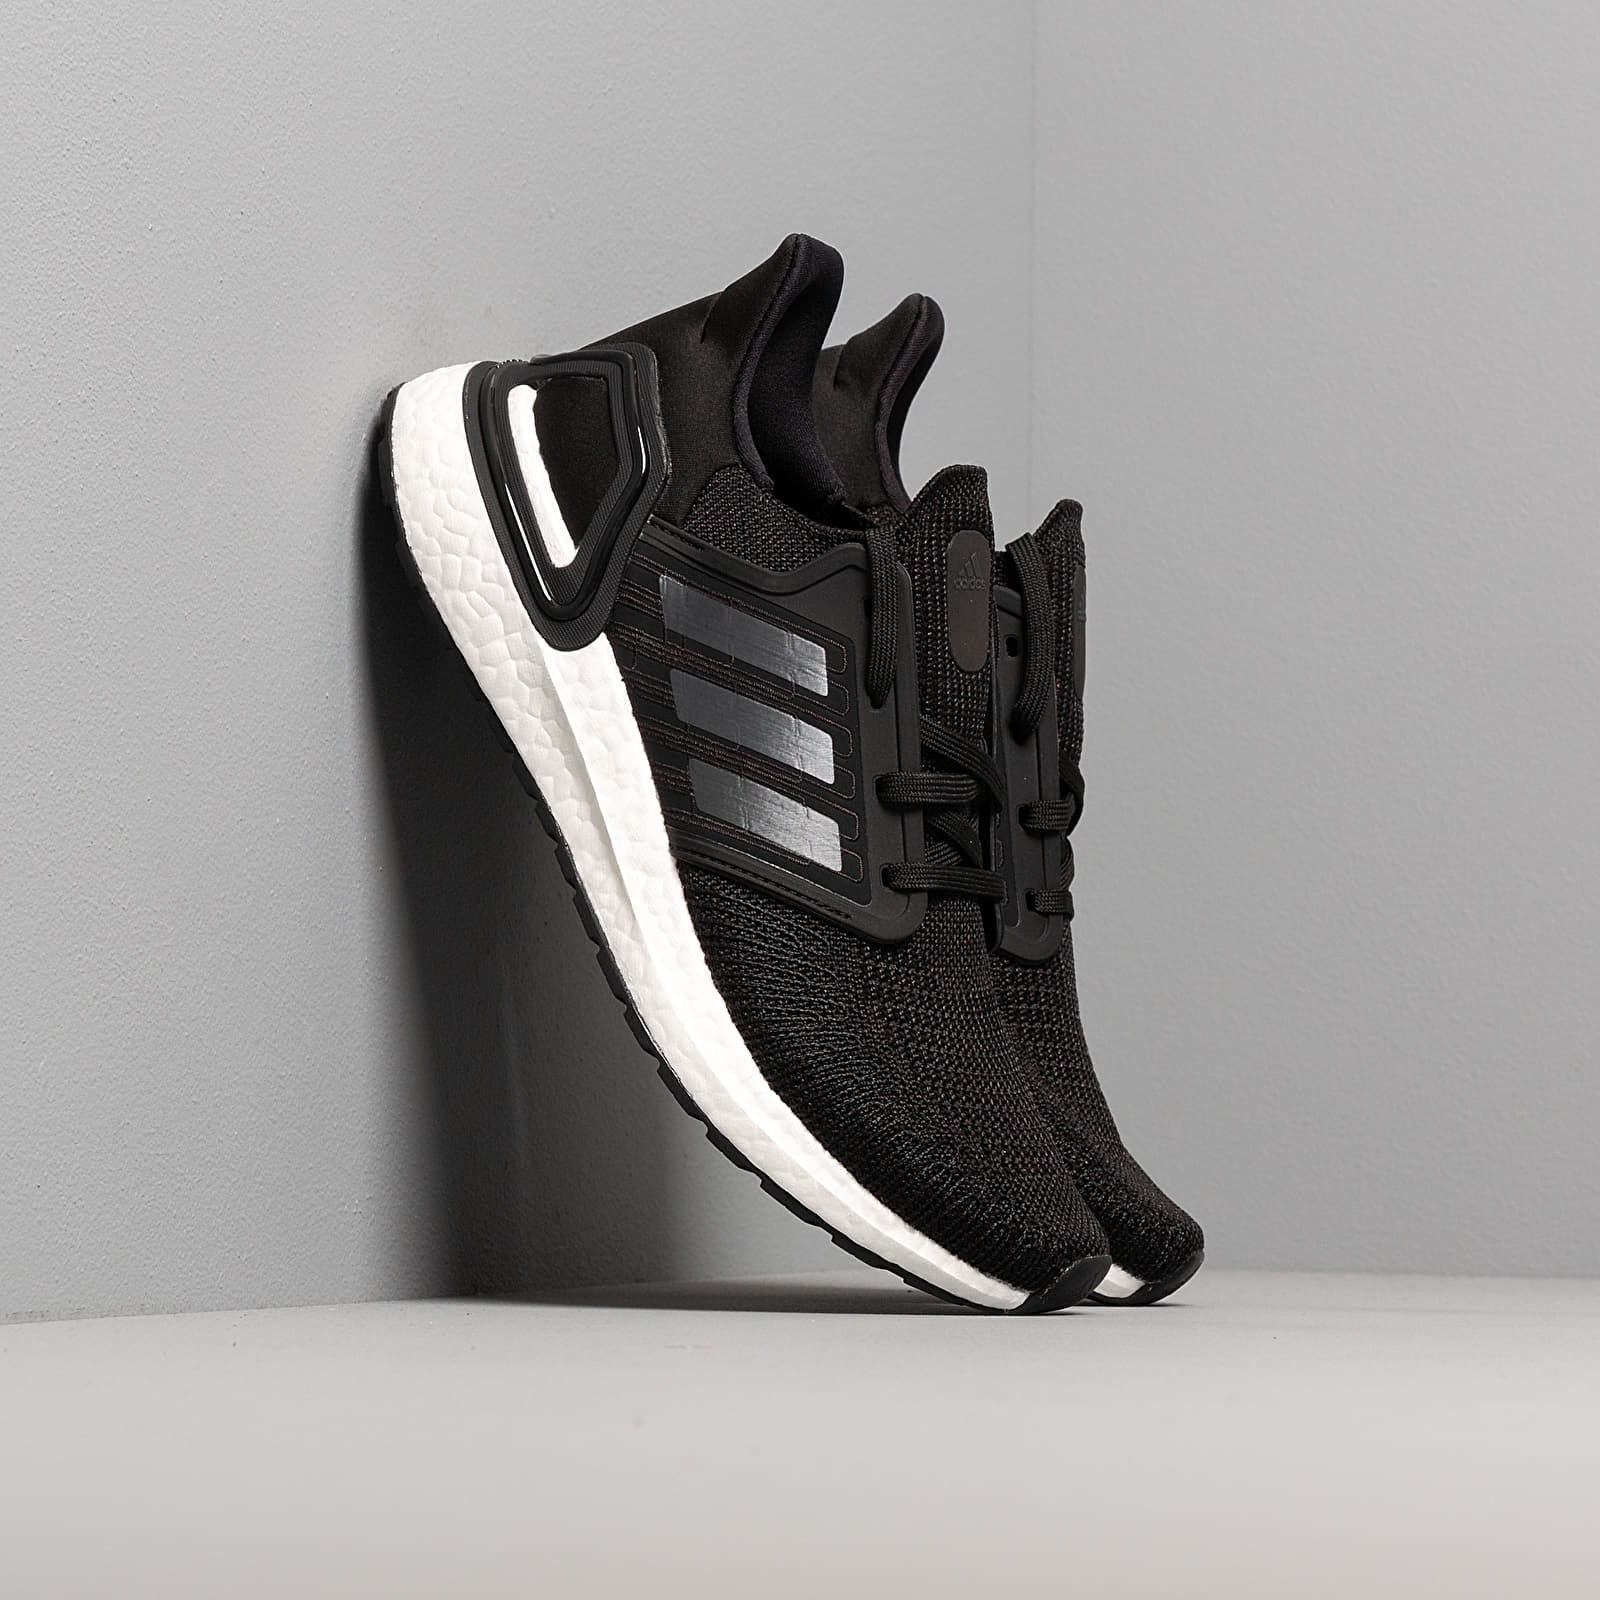 Women's shoes adidas UltraBOOST 20 W Core Black/ Night Metalic/ Ftw White